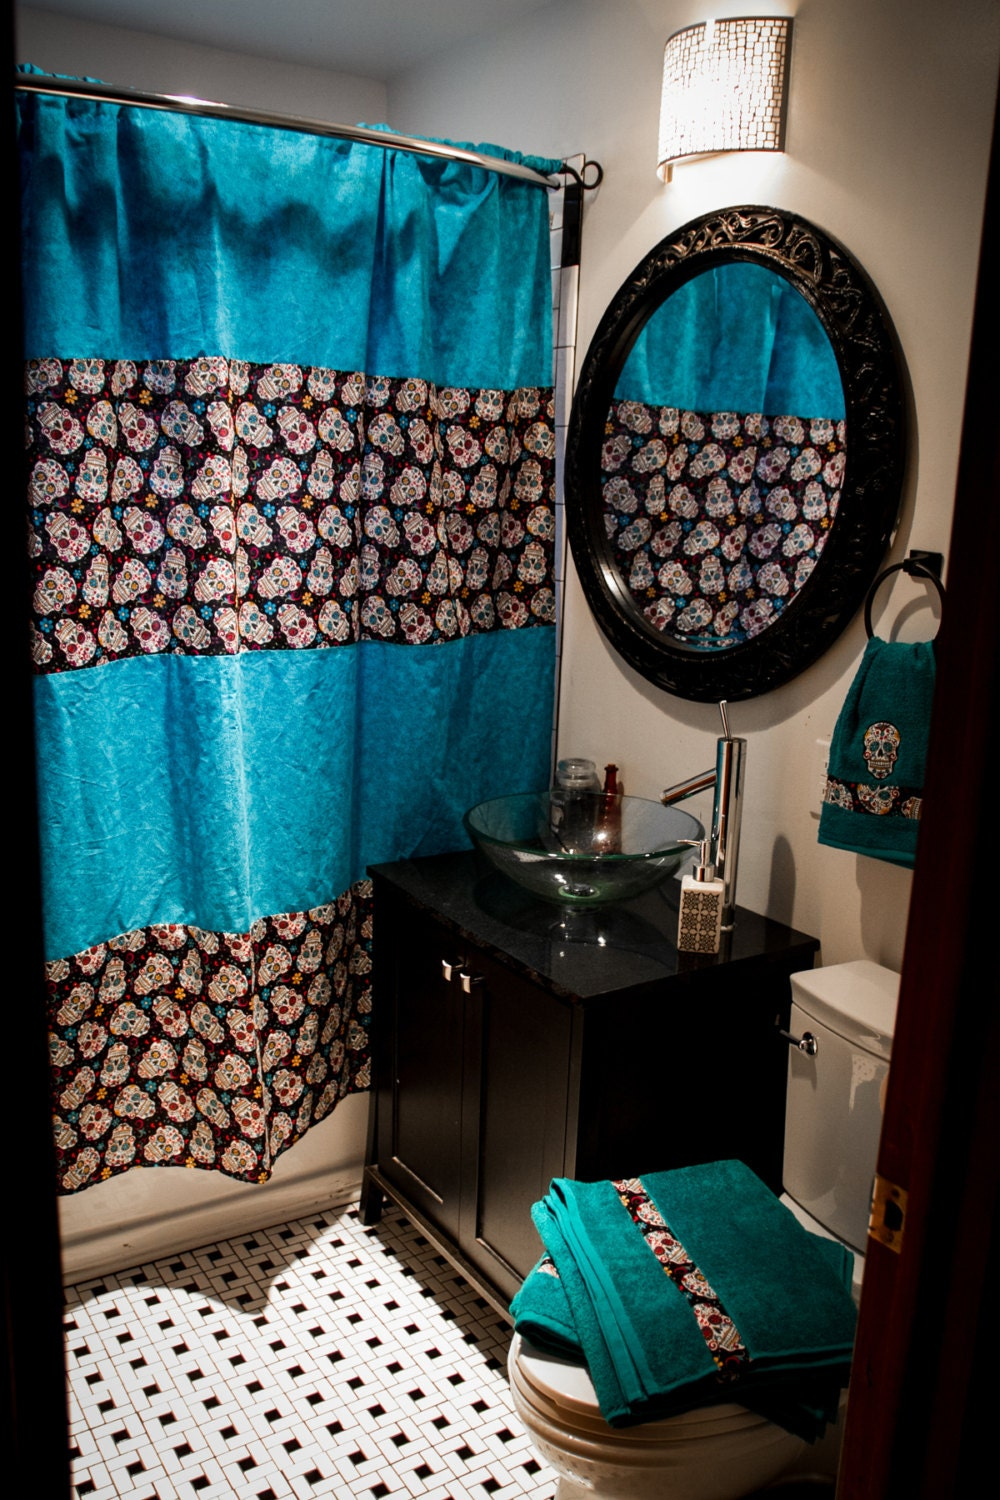 Sugar Skull Bathroom Decor Sale Custom Bathroom Decor Shower Curtain Bath Towels Hand